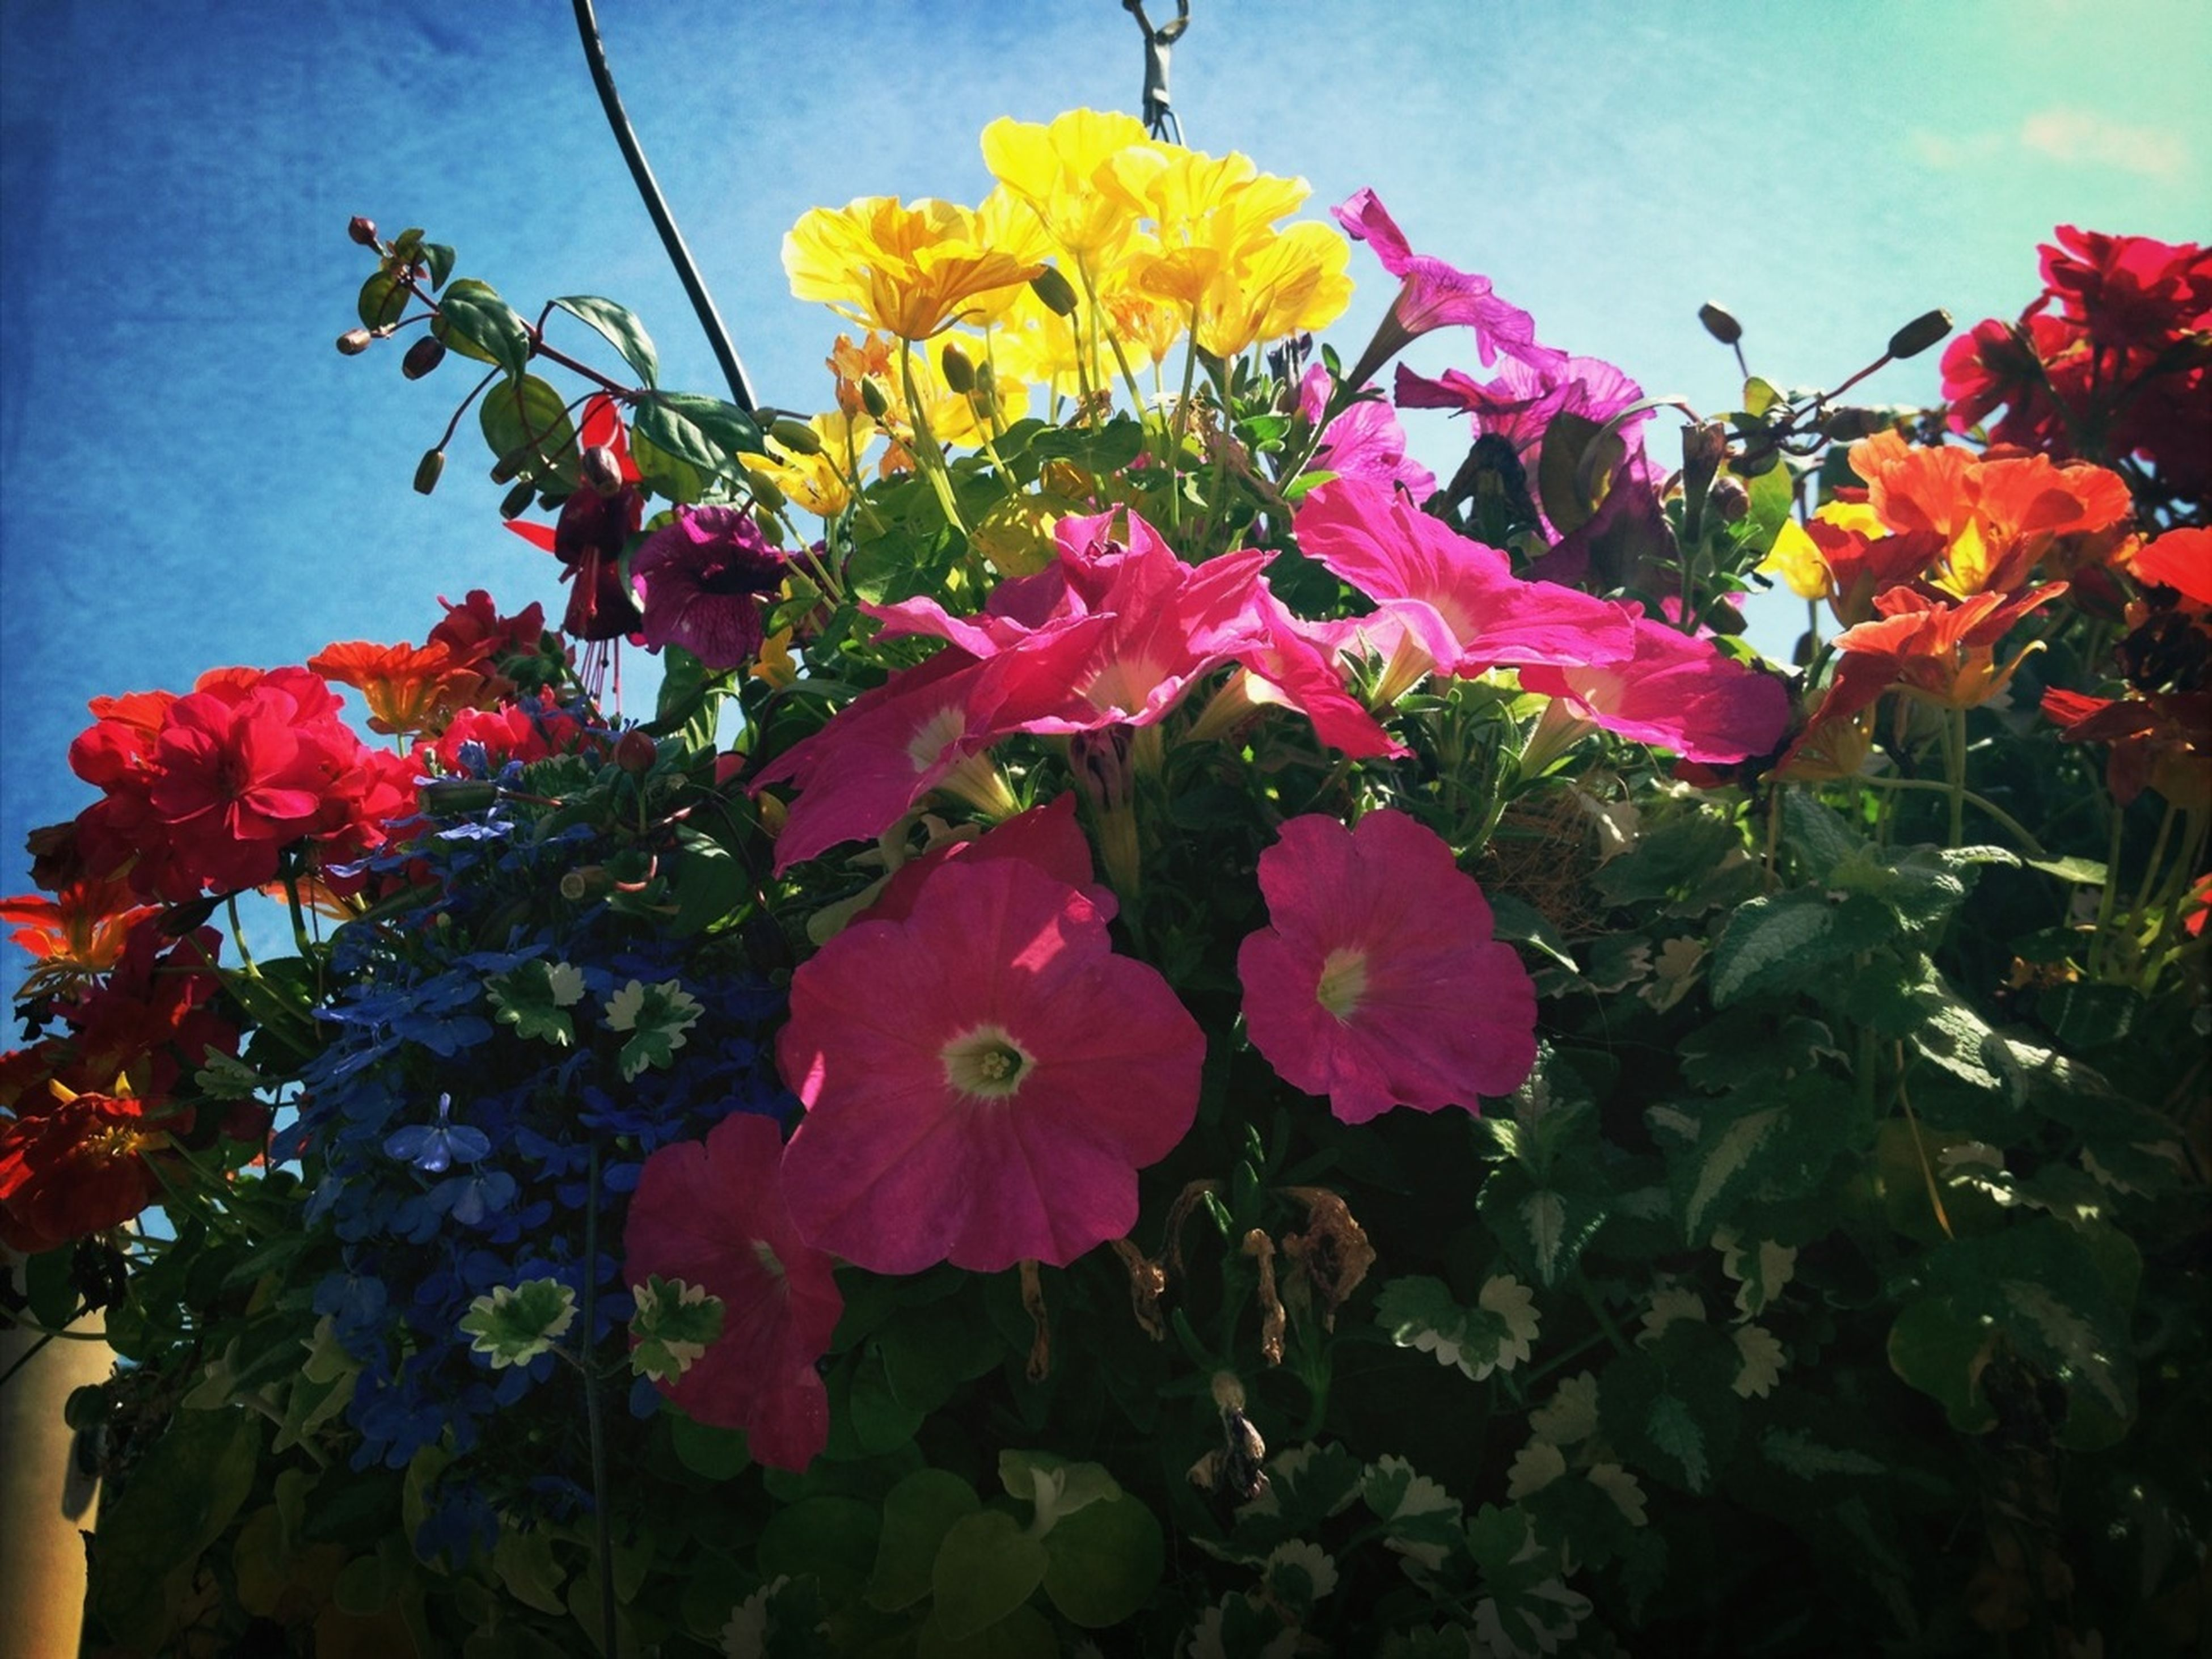 flower, freshness, fragility, growth, beauty in nature, sky, low angle view, petal, nature, leaf, blooming, plant, in bloom, red, flower head, blossom, blue, sunlight, day, cloud - sky